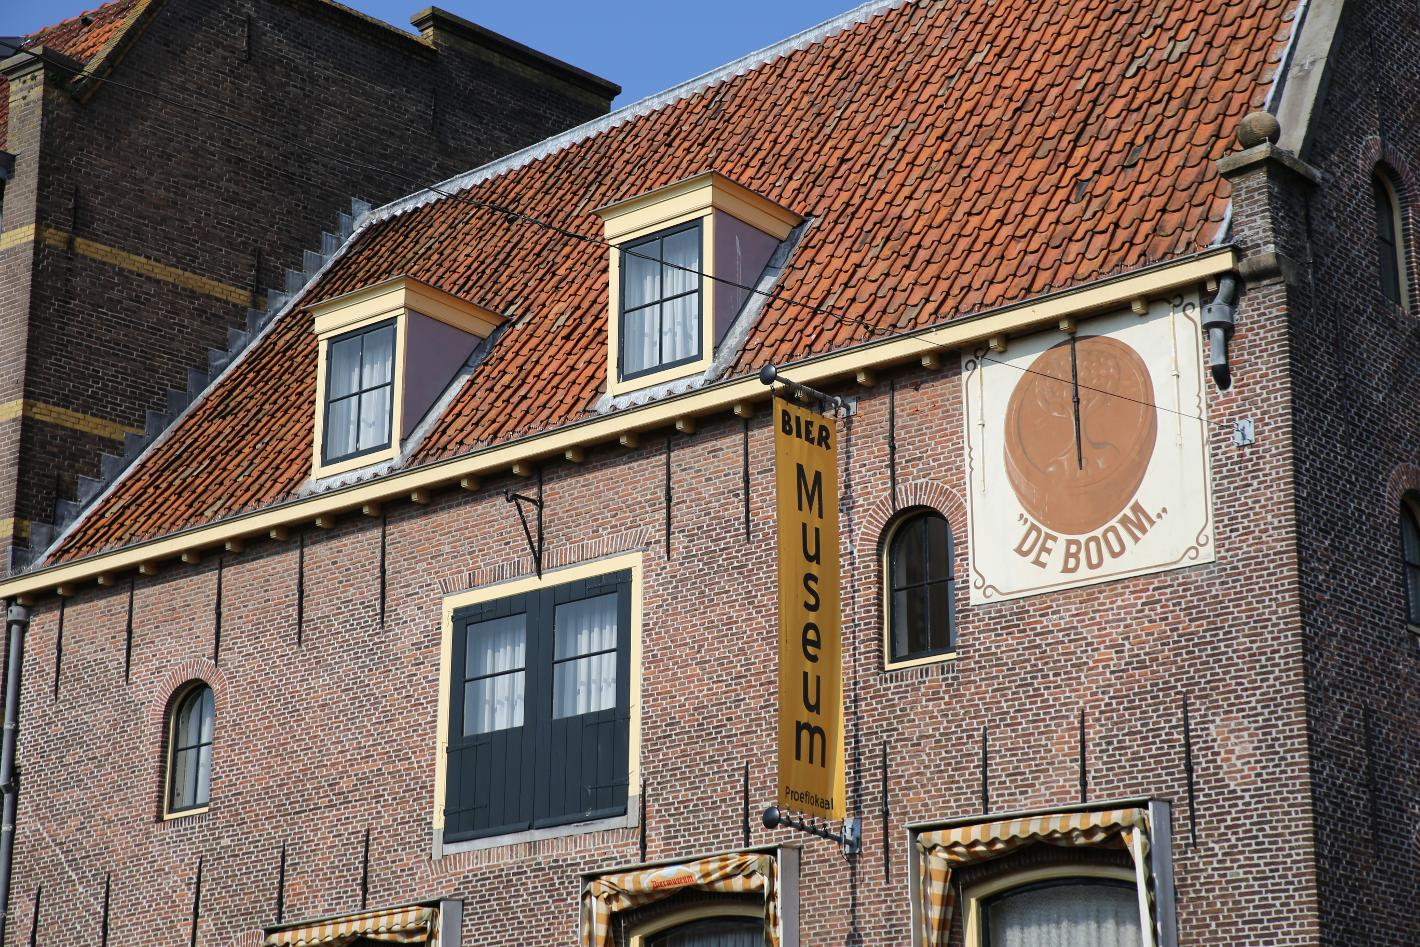 Foto Biermuseum De Boom in Alkmaar, Zien, Musea & galleries - #1